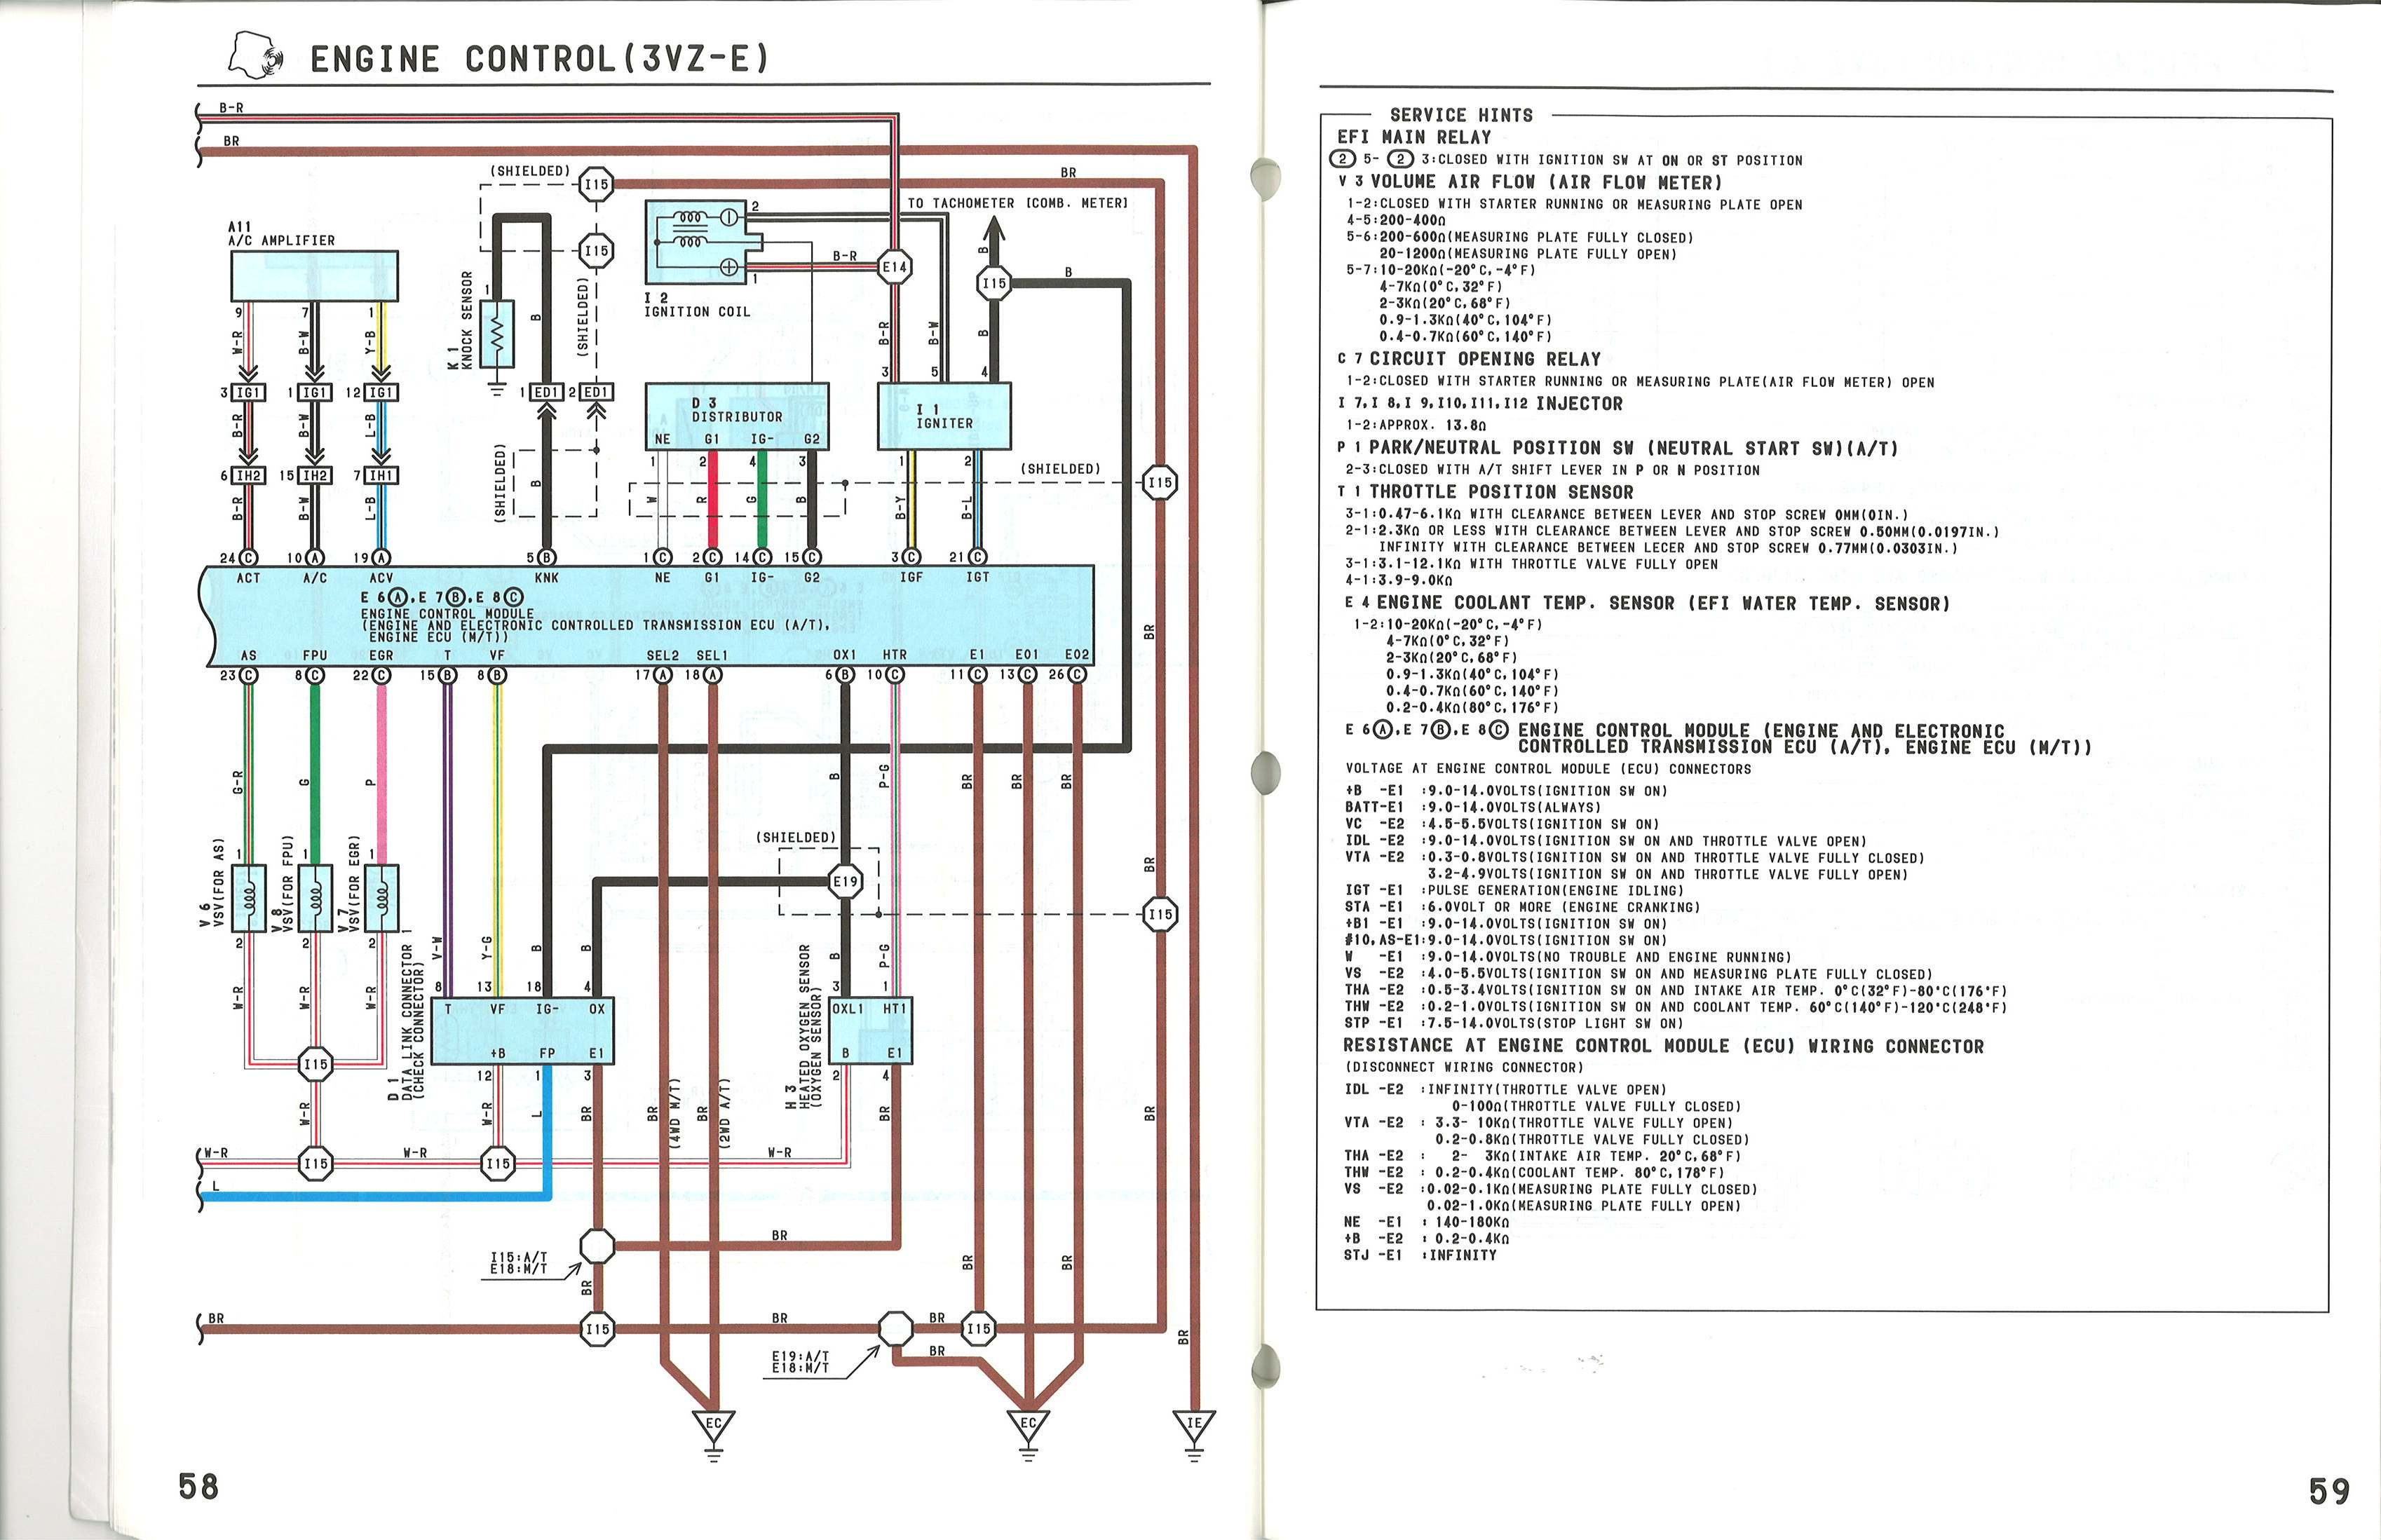 Engine_Control_3vze_3 knock sensor wiring diagram ecu wiring diagram \u2022 free wiring 1992 toyota pickup wiring diagram at eliteediting.co